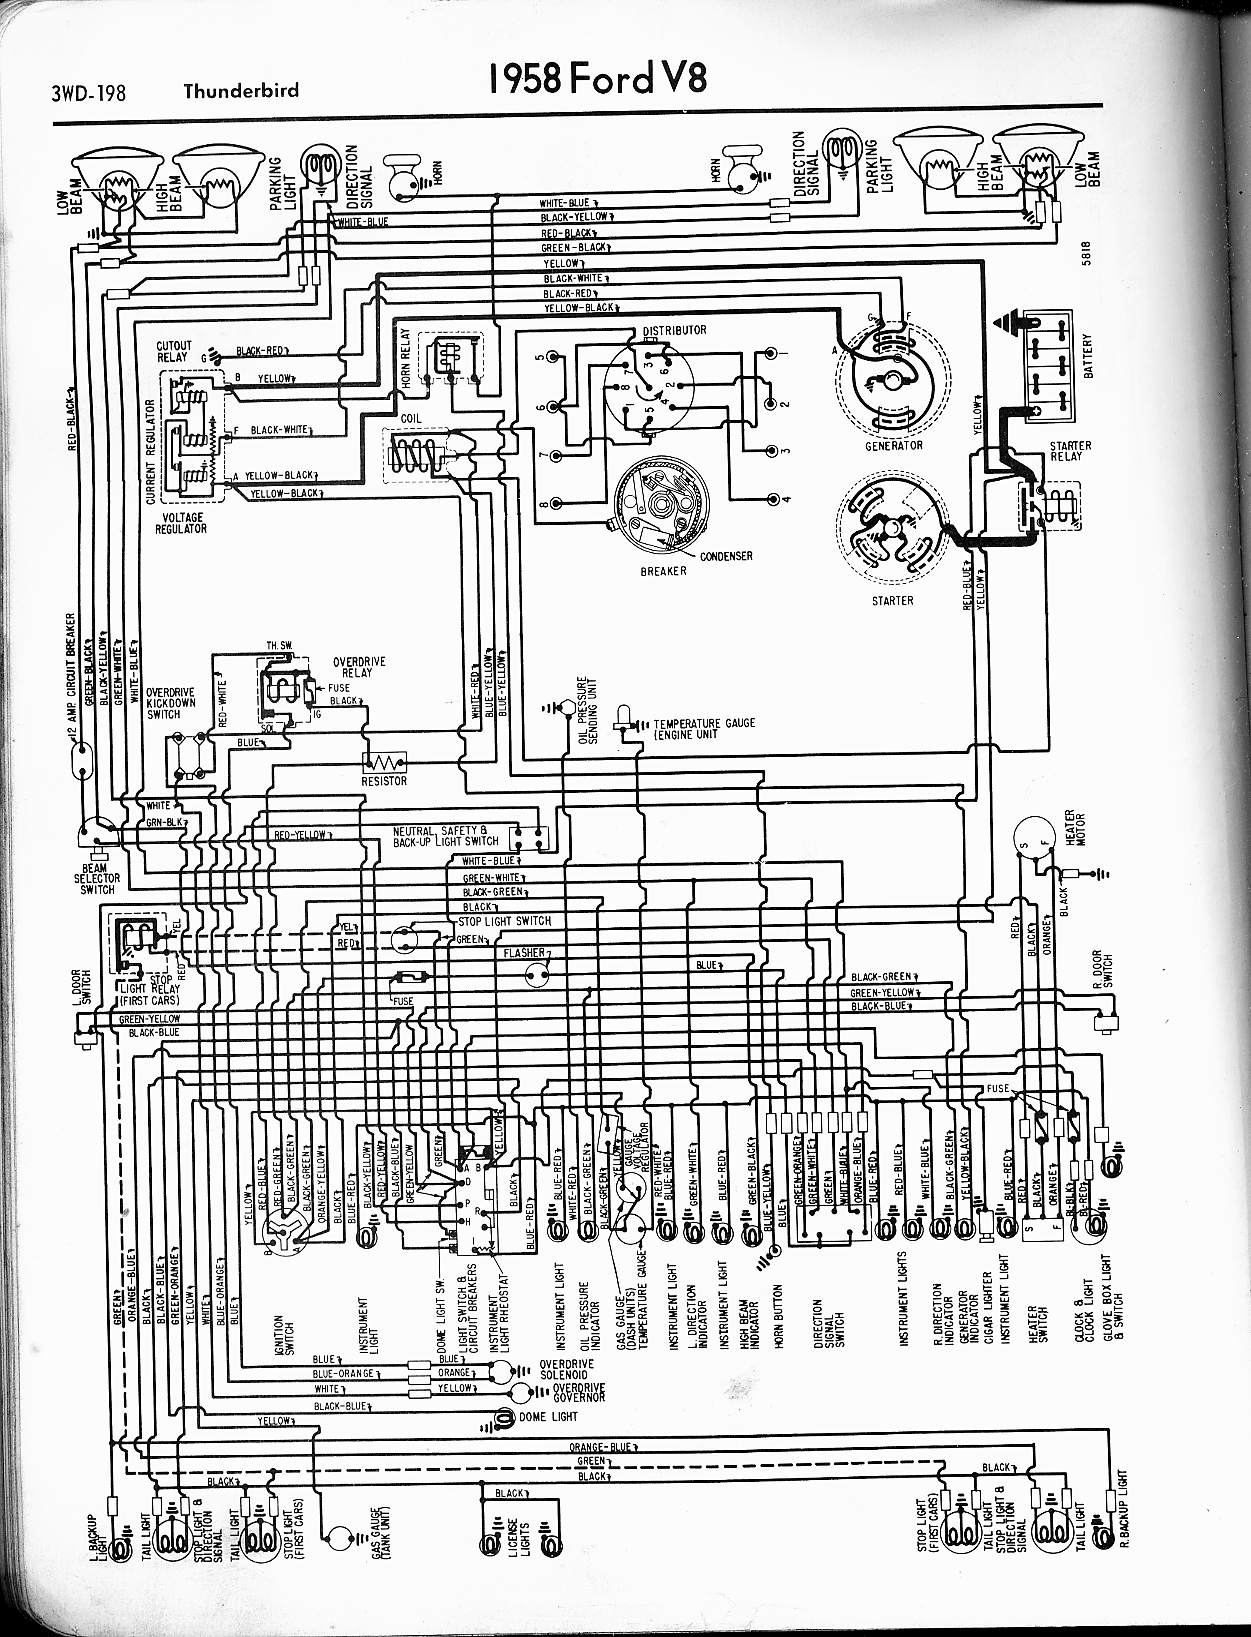 hight resolution of 1958 ford wiring diagram wiring diagram third level 1946 ford truck wiring diagram 1958 ford truck wiring diagram